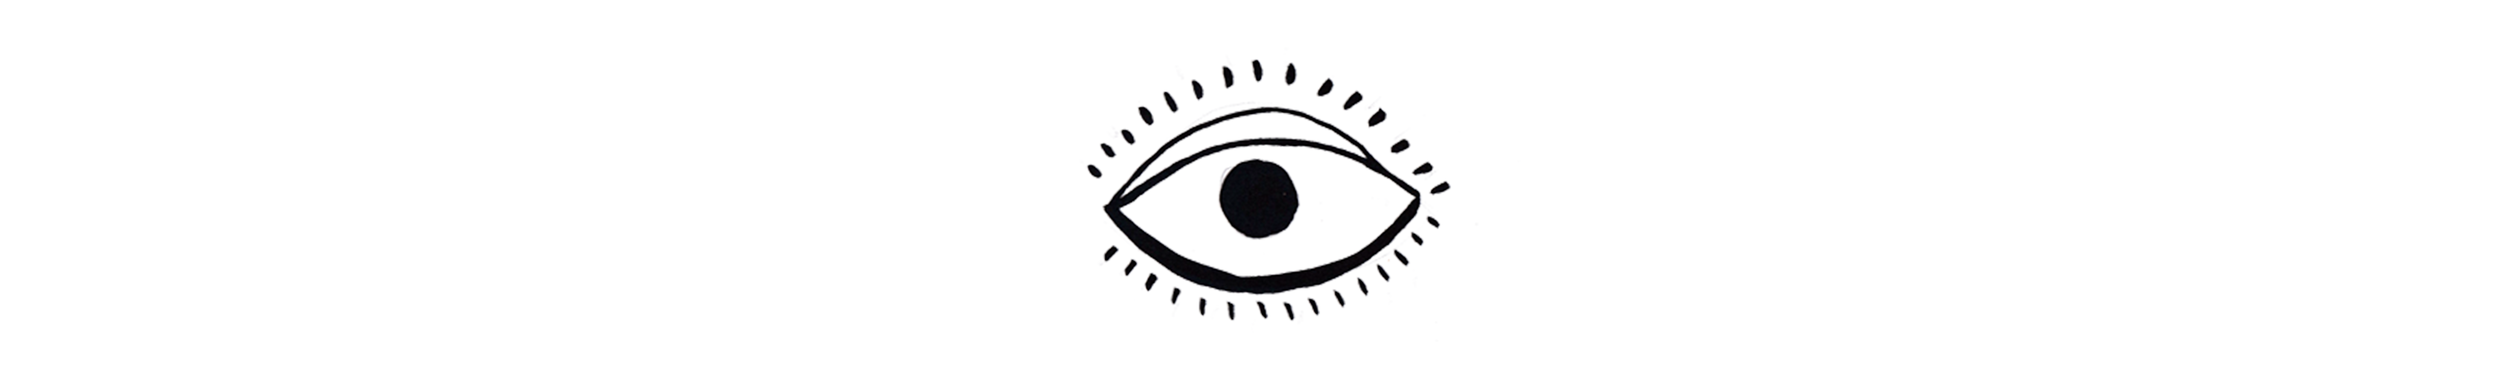 eye_banner-new.png